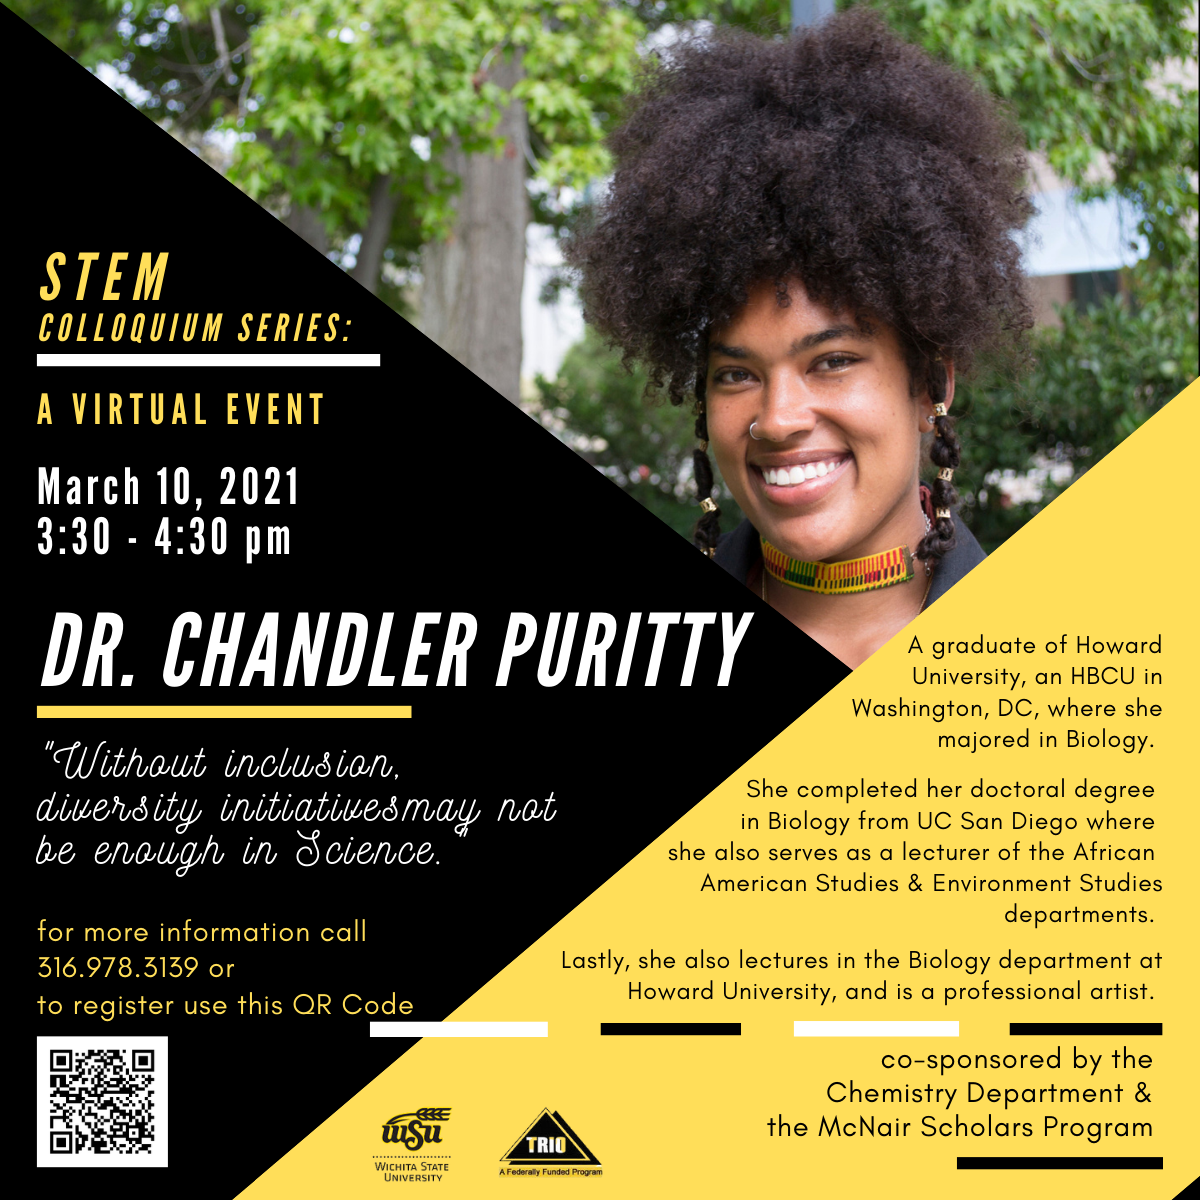 Dr. Chandler Puritty event poster